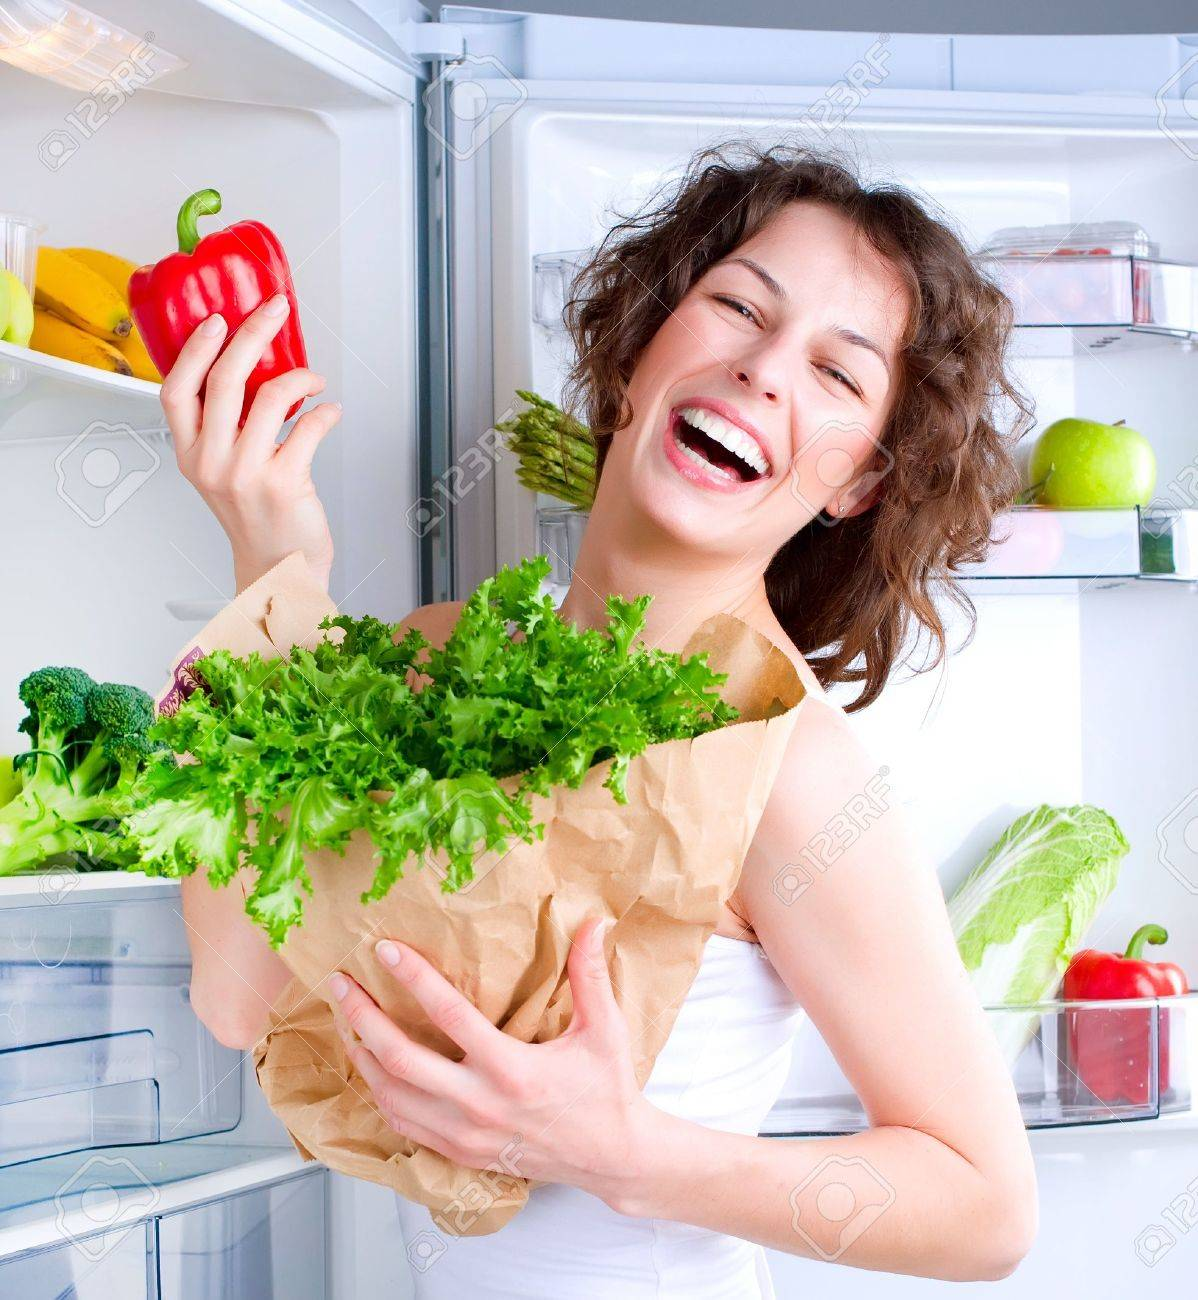 Beautiful Young Woman near the Refrigerator with healthy food Stock Photo - 13064625